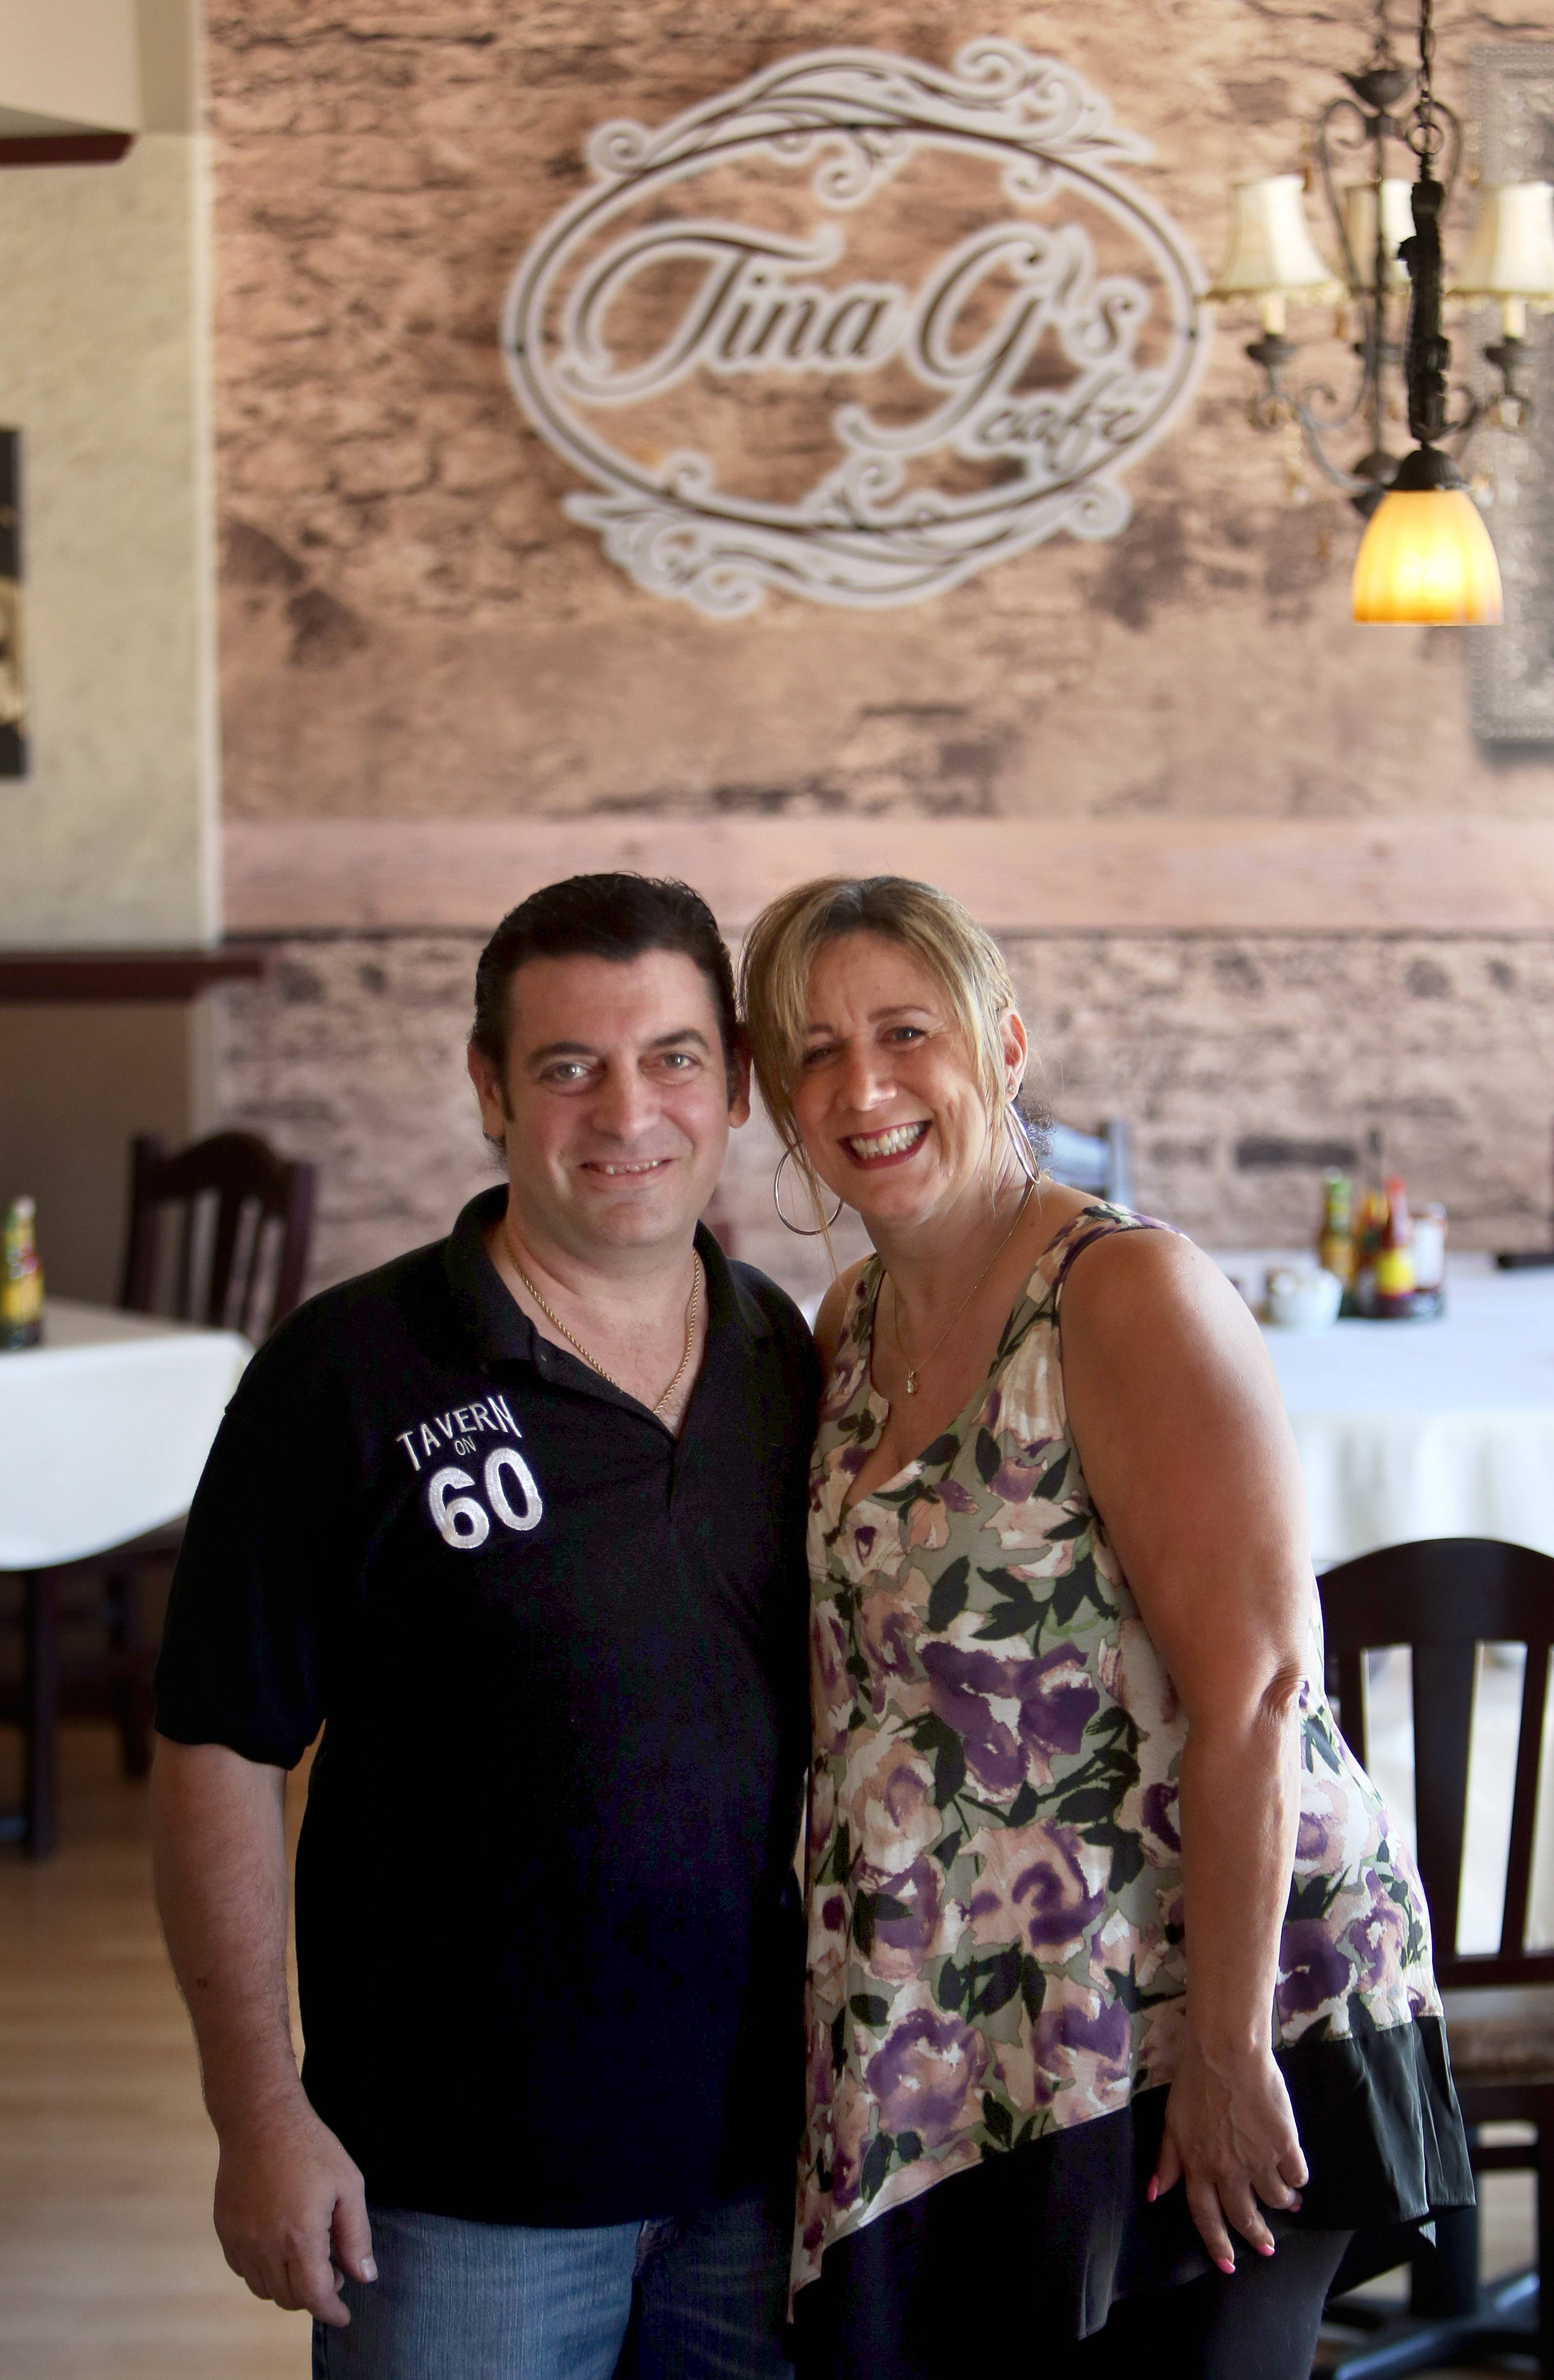 Tina G's helping to build Mundelein's roster of indie eateries